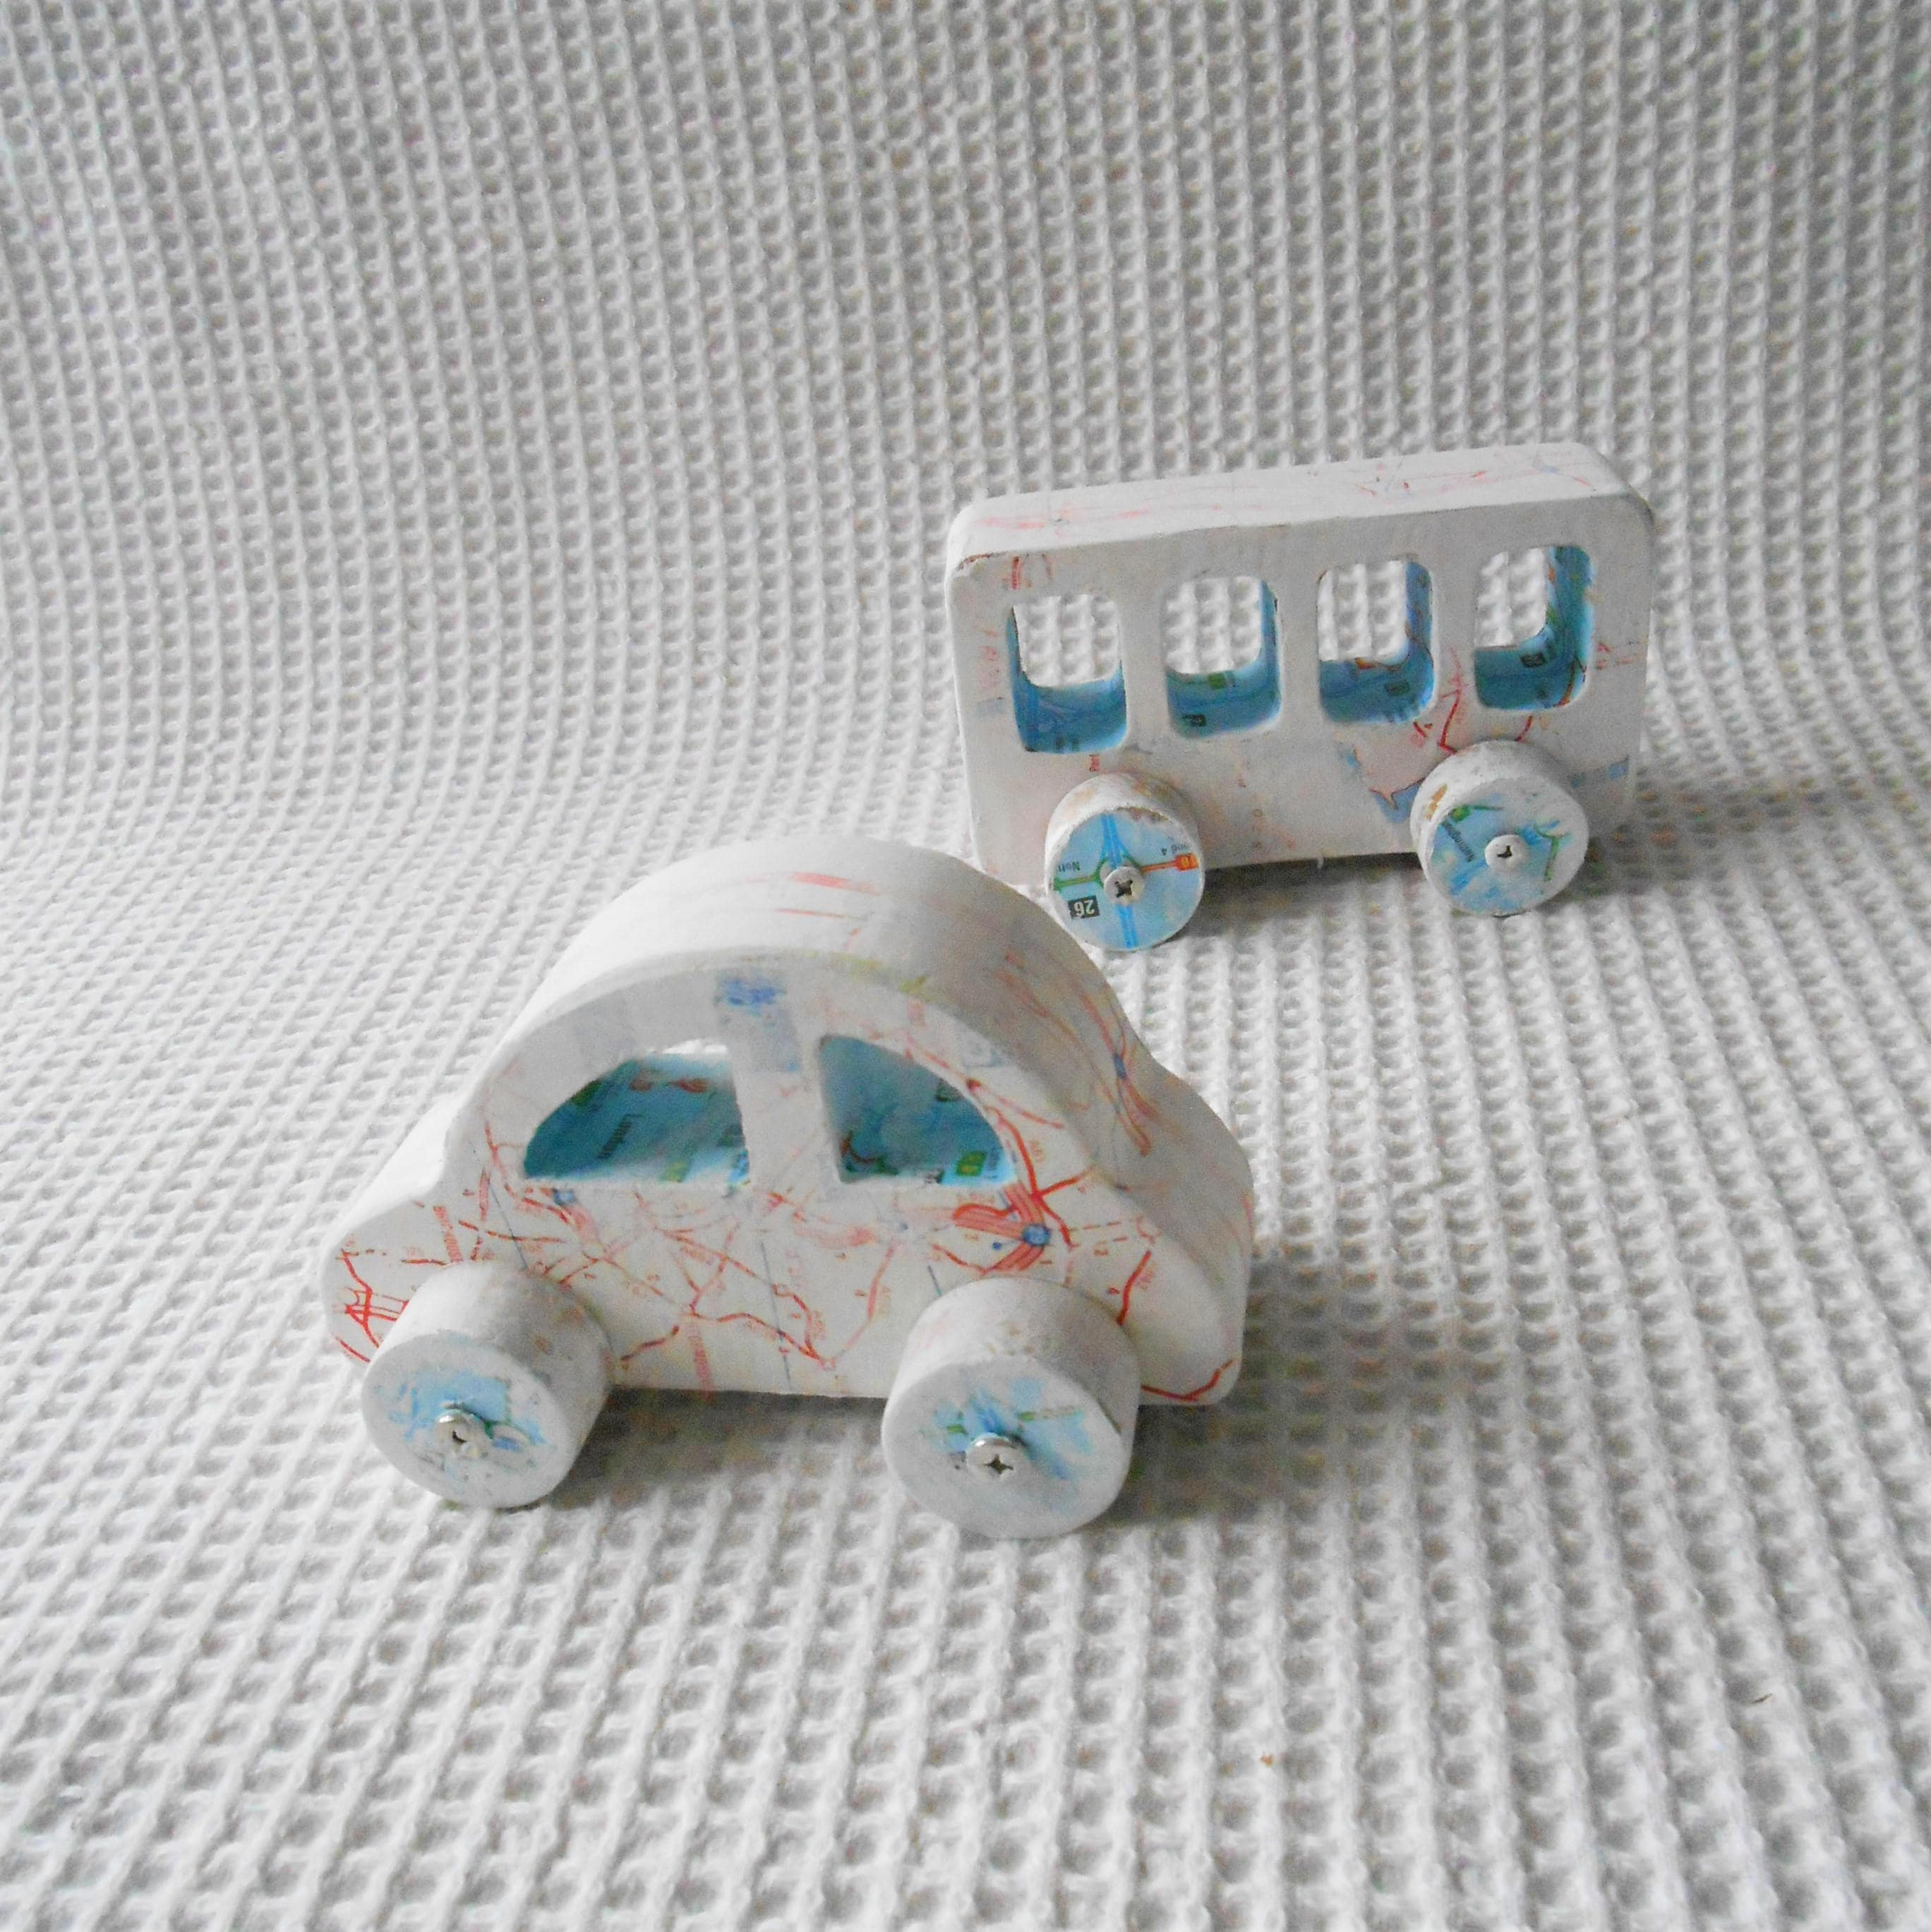 wooden Car and Bus Push Along Toys Childrens Vintage Cottage Shabby Chic Toy